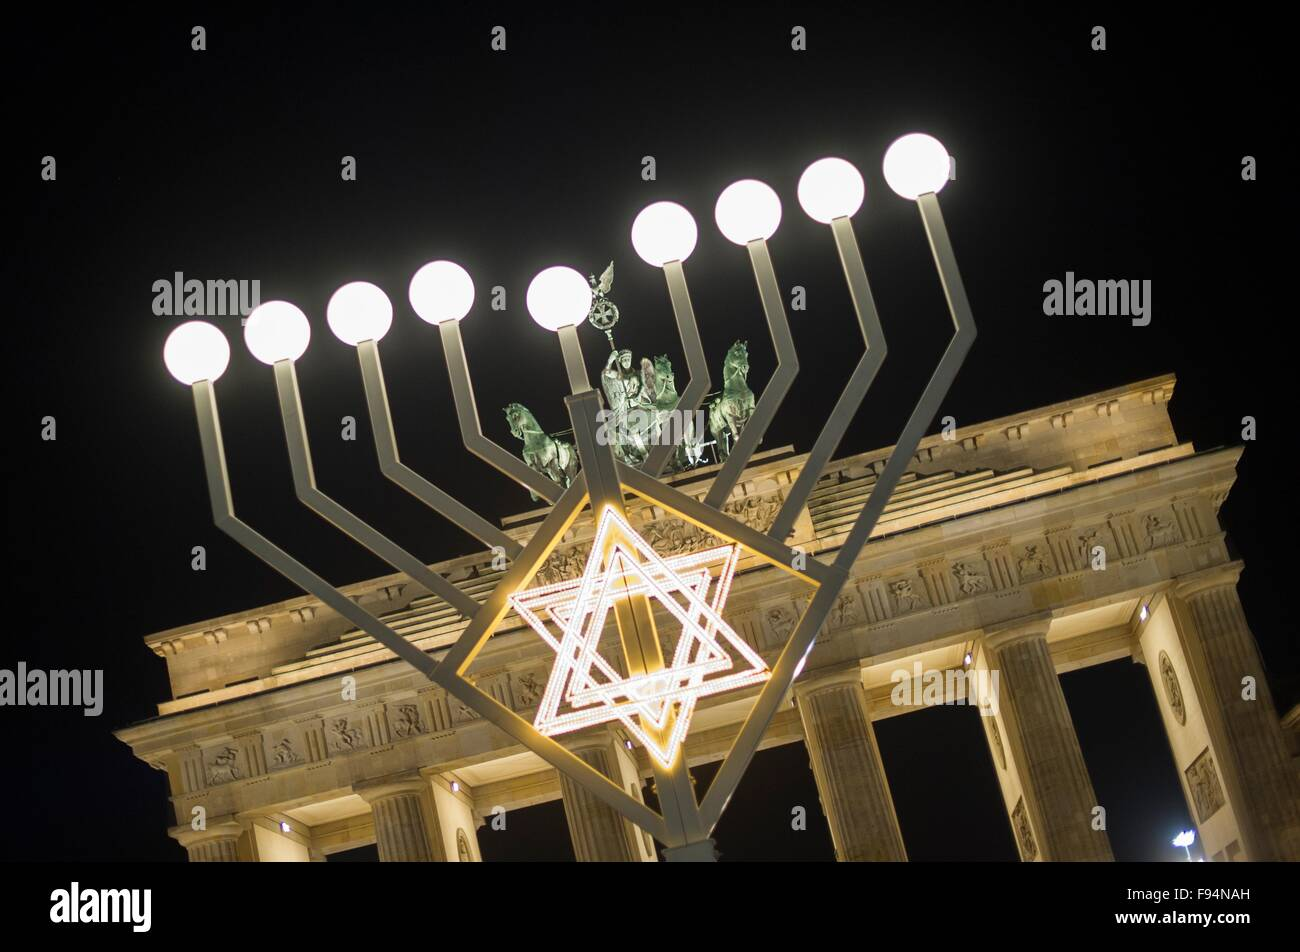 All the lights on the menorah are lit in front of the Brandenburg Gate in Berlin,Germany, 13 December 2015. - Stock Image